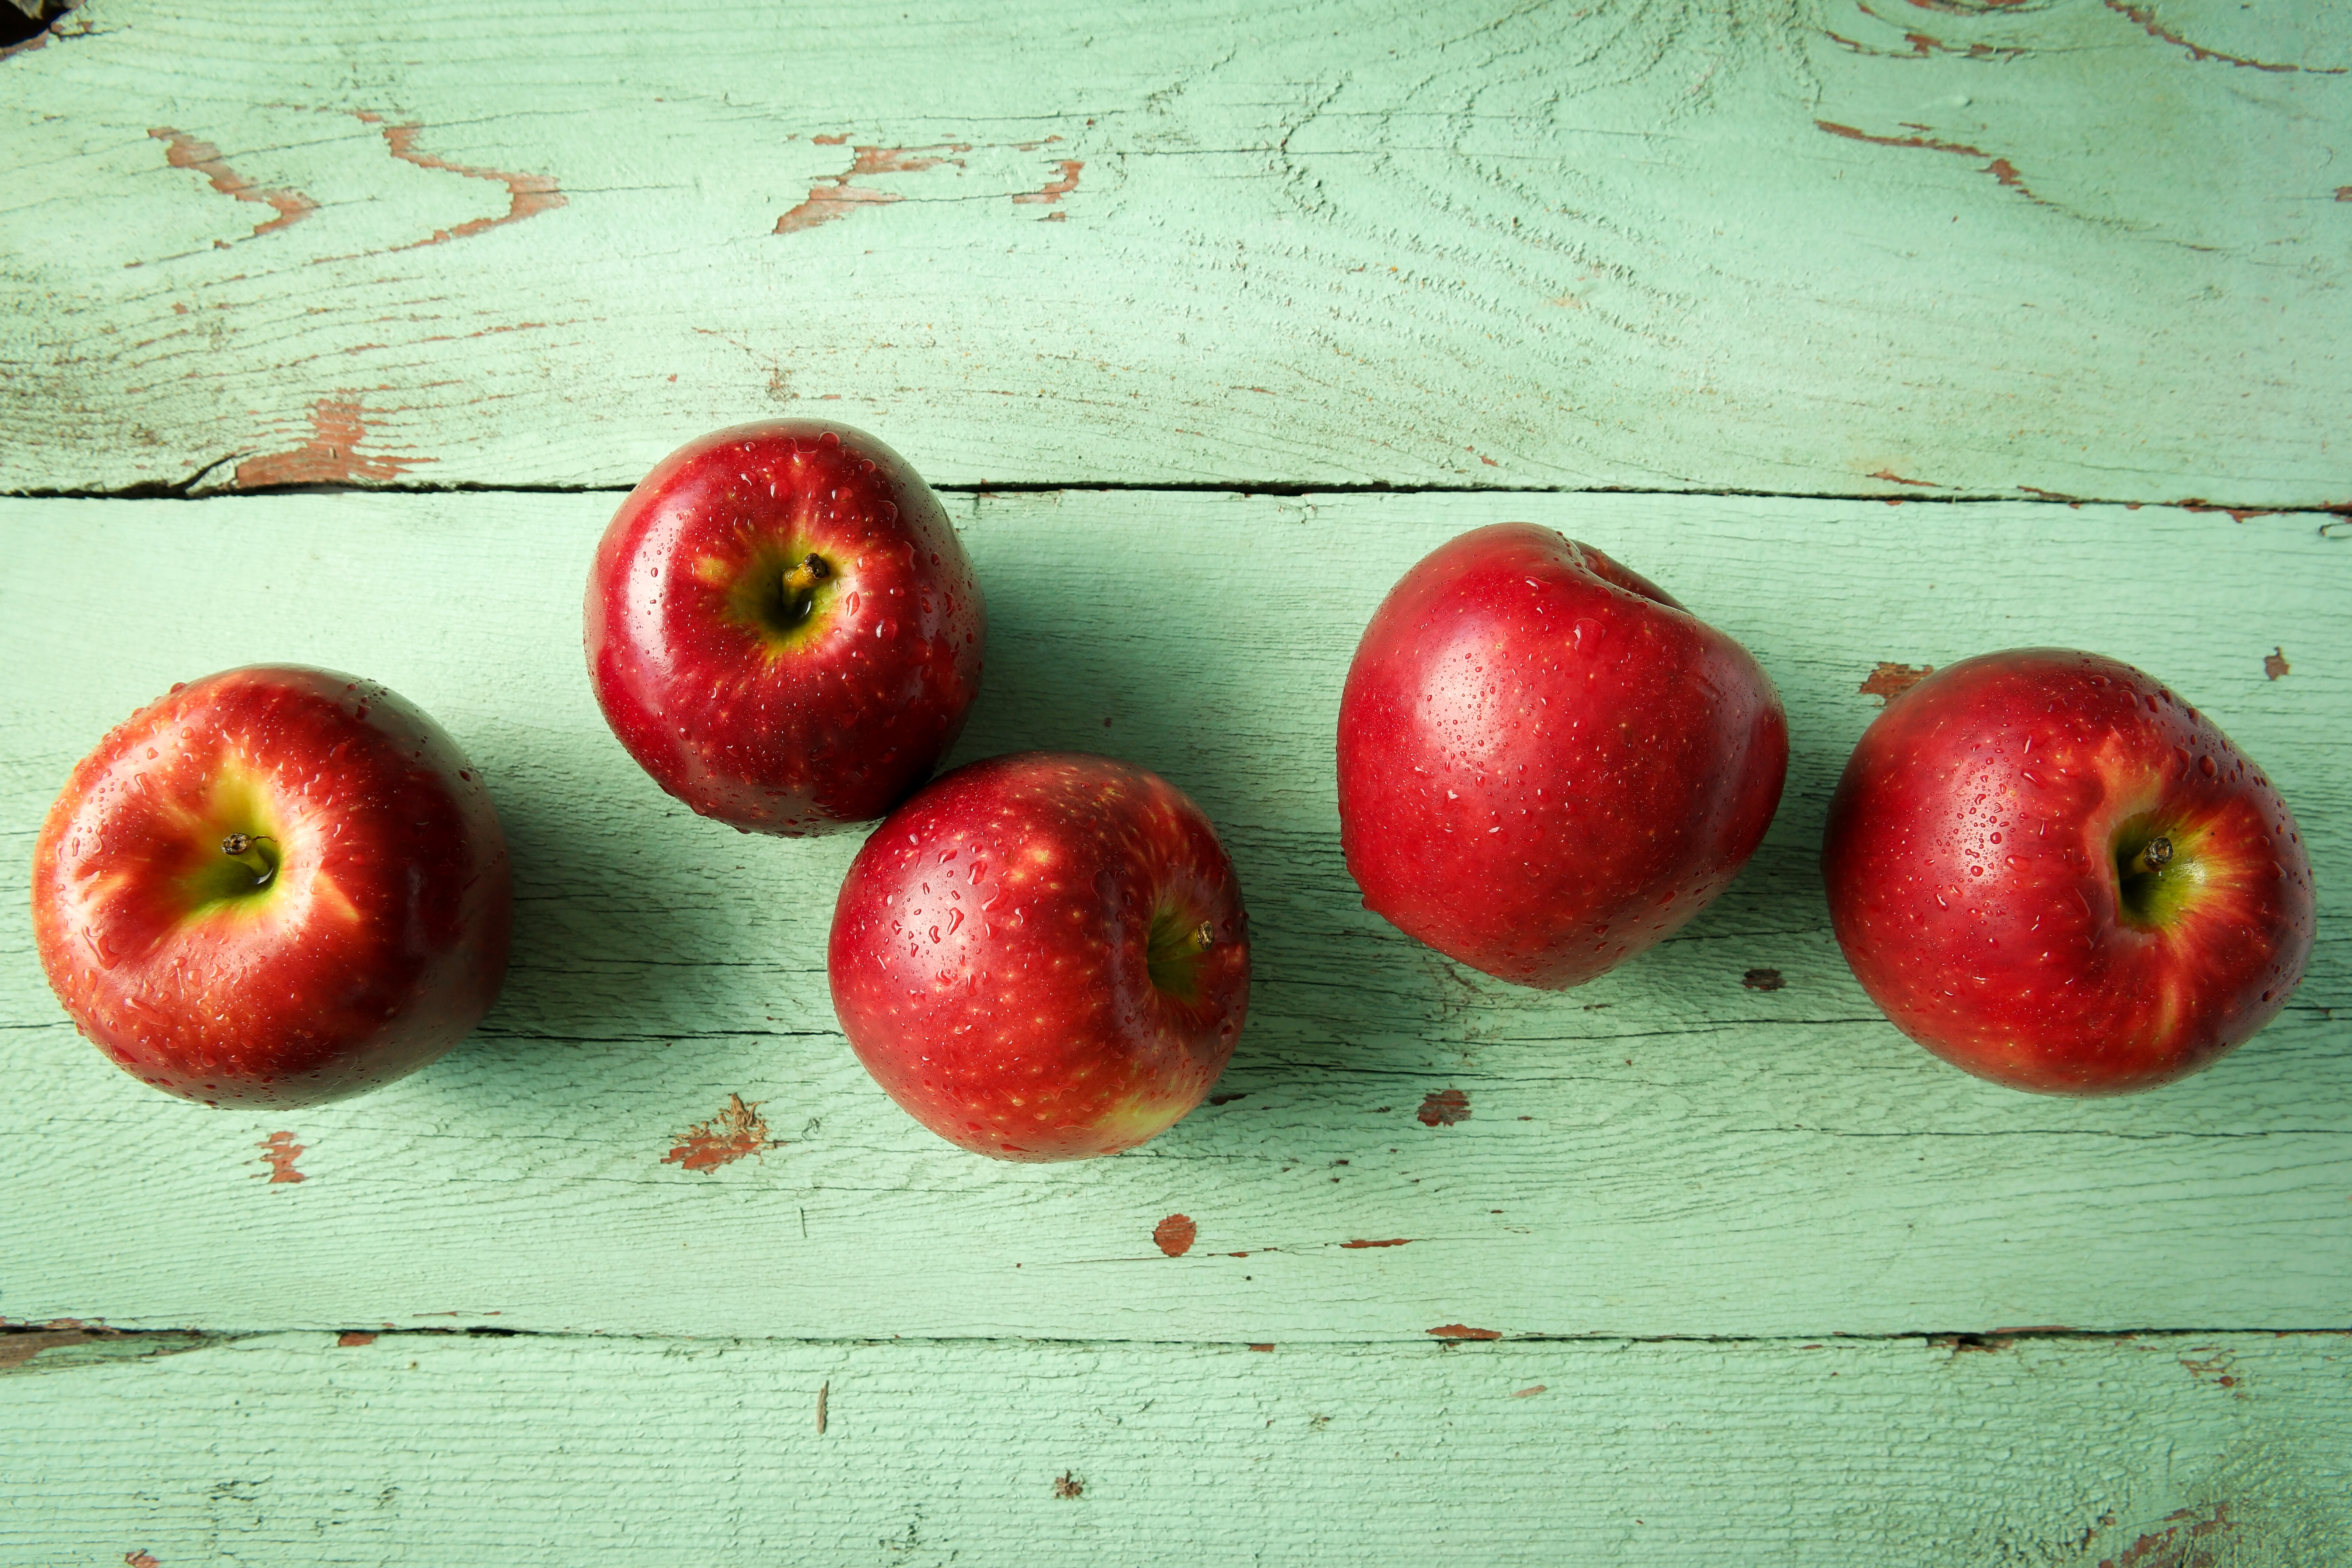 5 Cosmic Crisp apples on a green wooden background